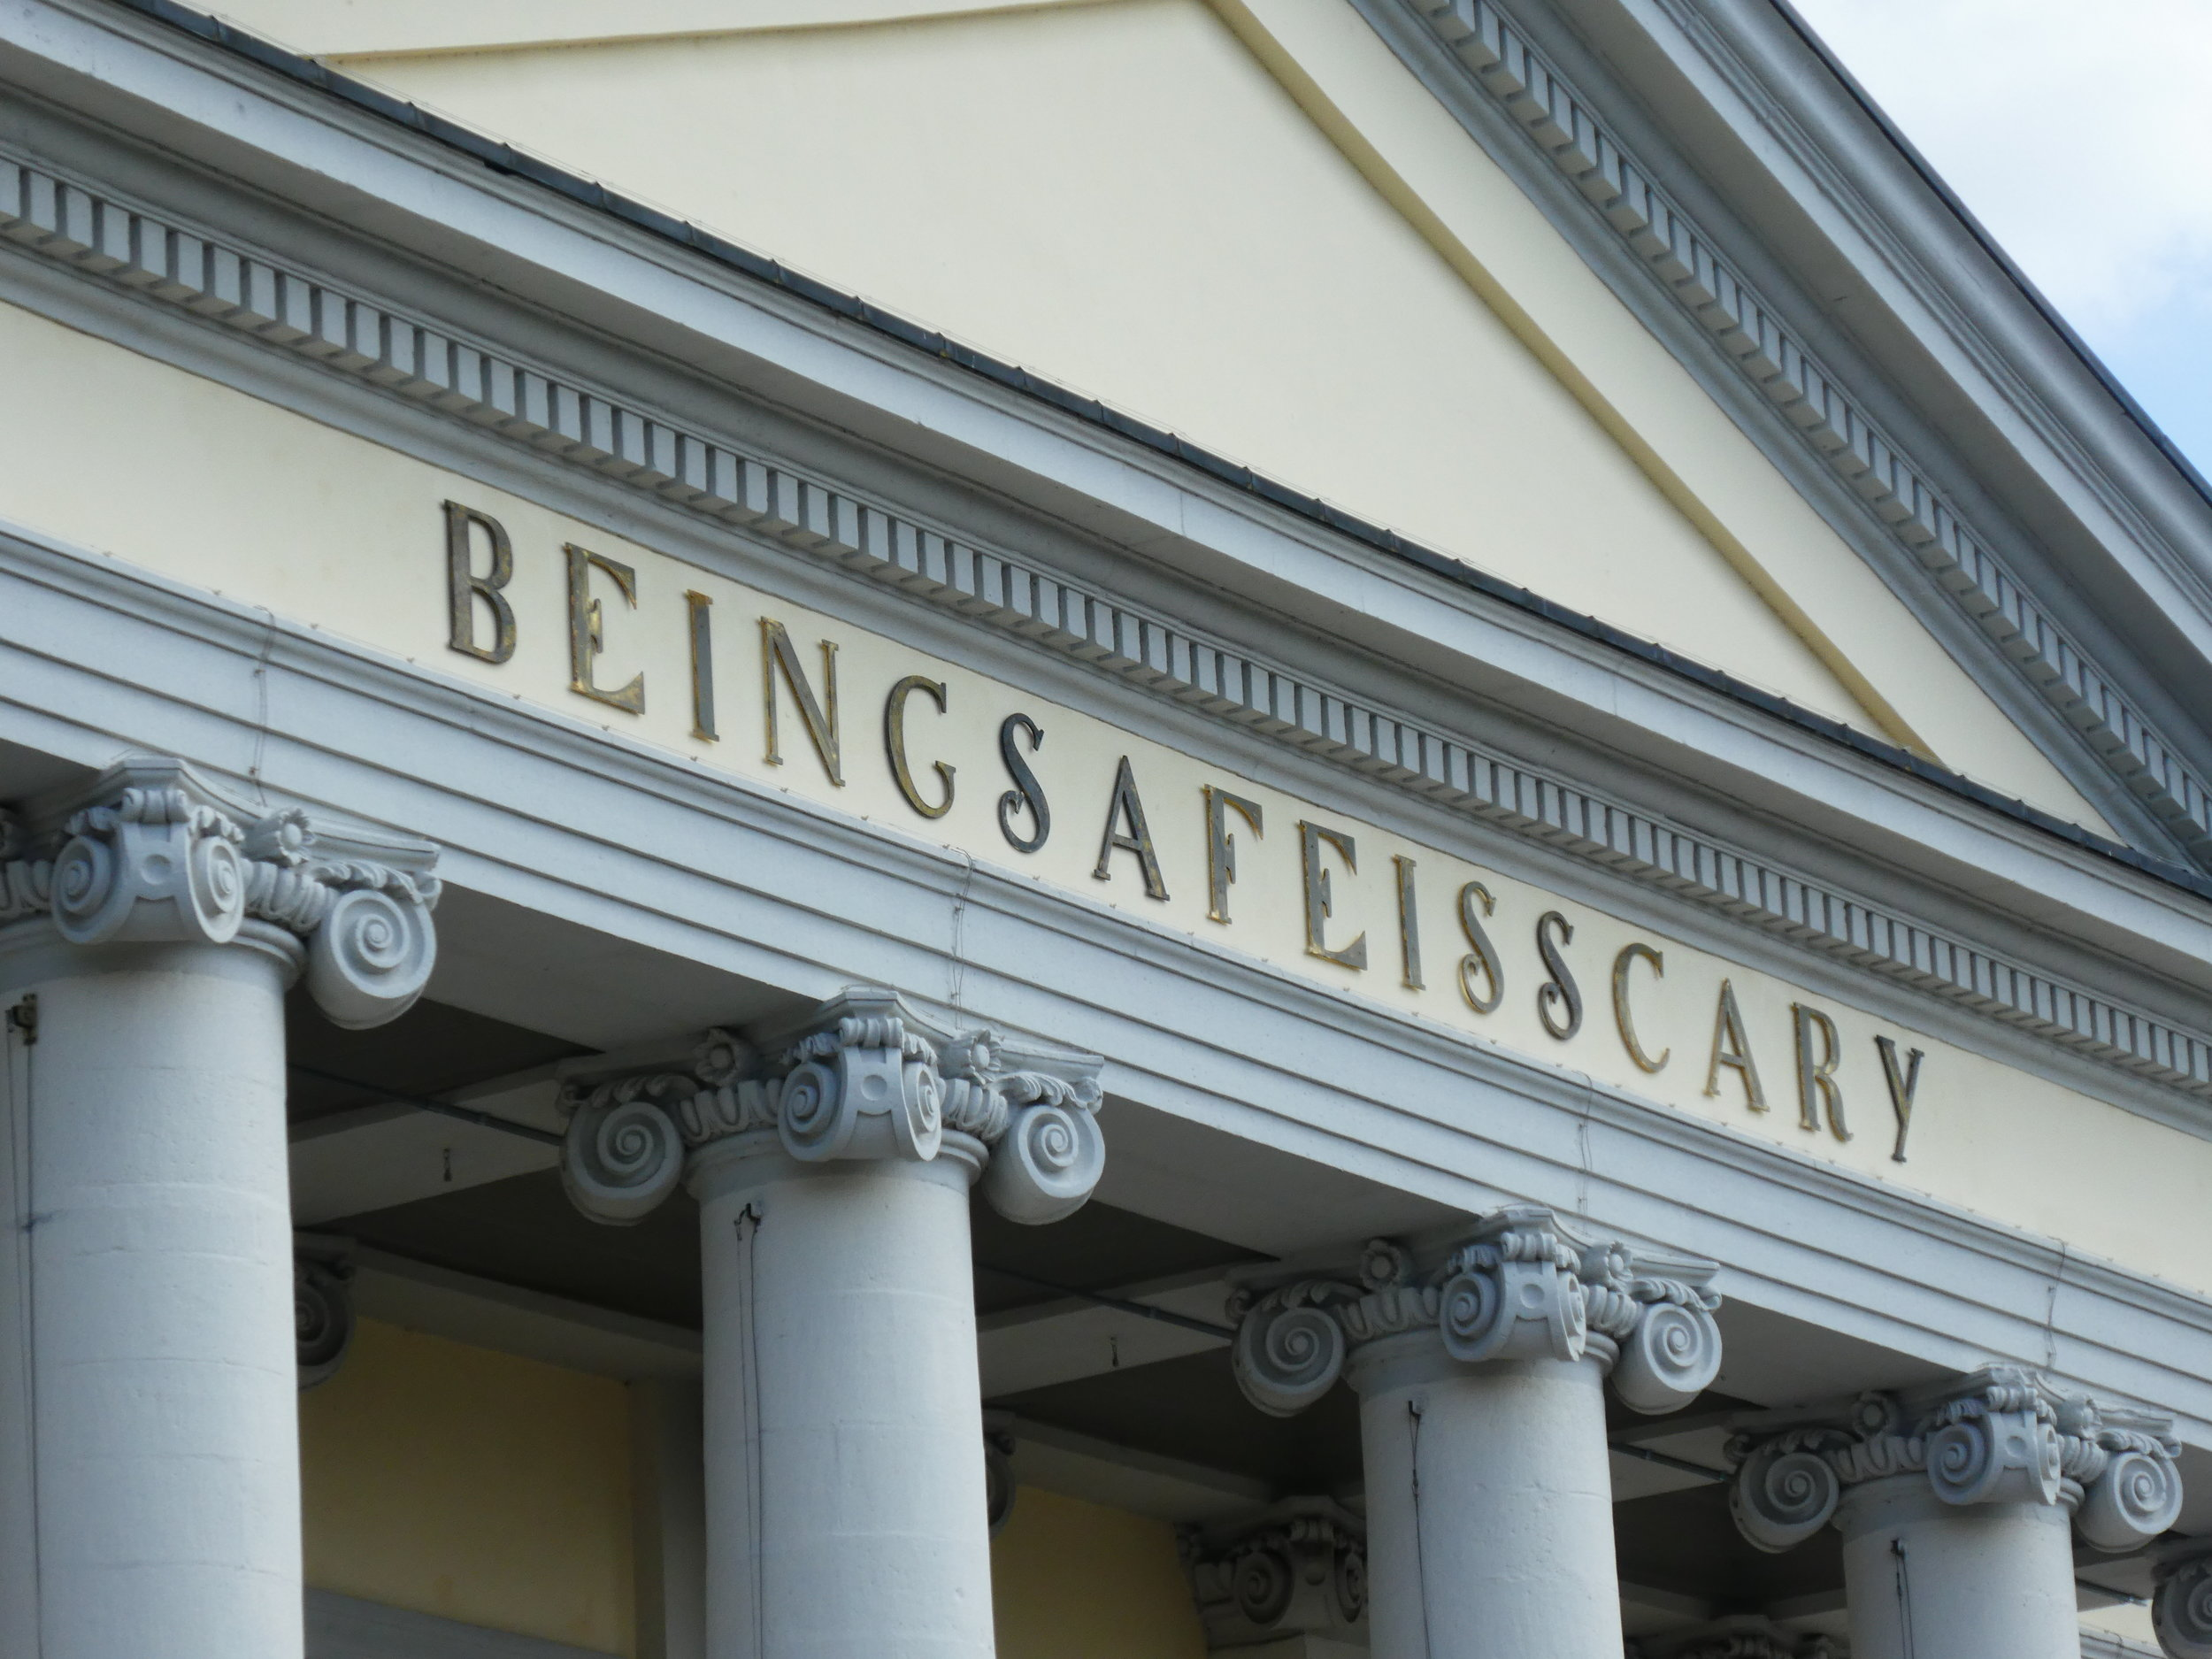 The Kassel Fridericianum crowned by the letters BEINGSAFEISSCARY